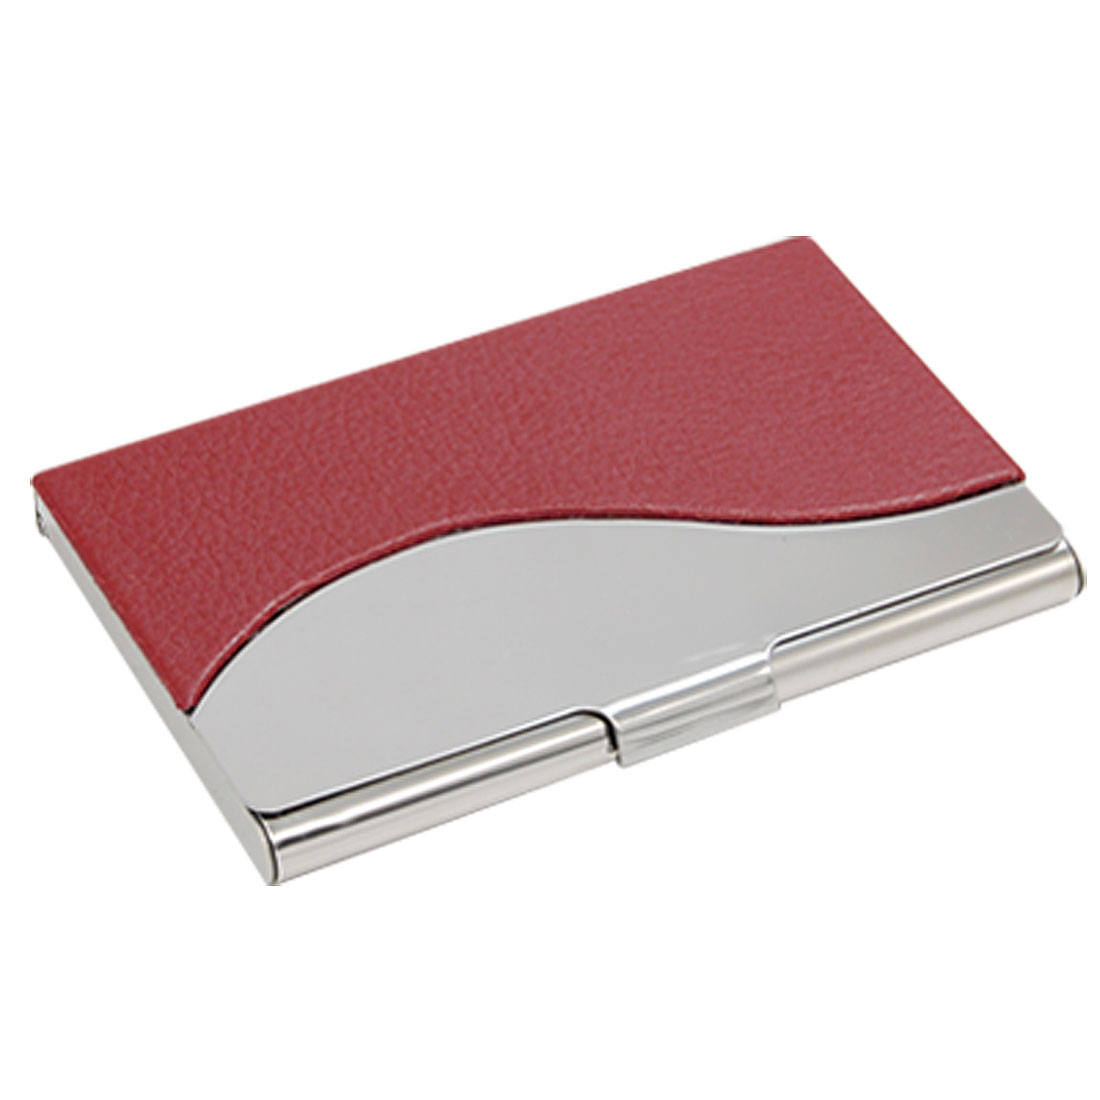 Red Silvery Name Business Credit Card Holder Case Organizer